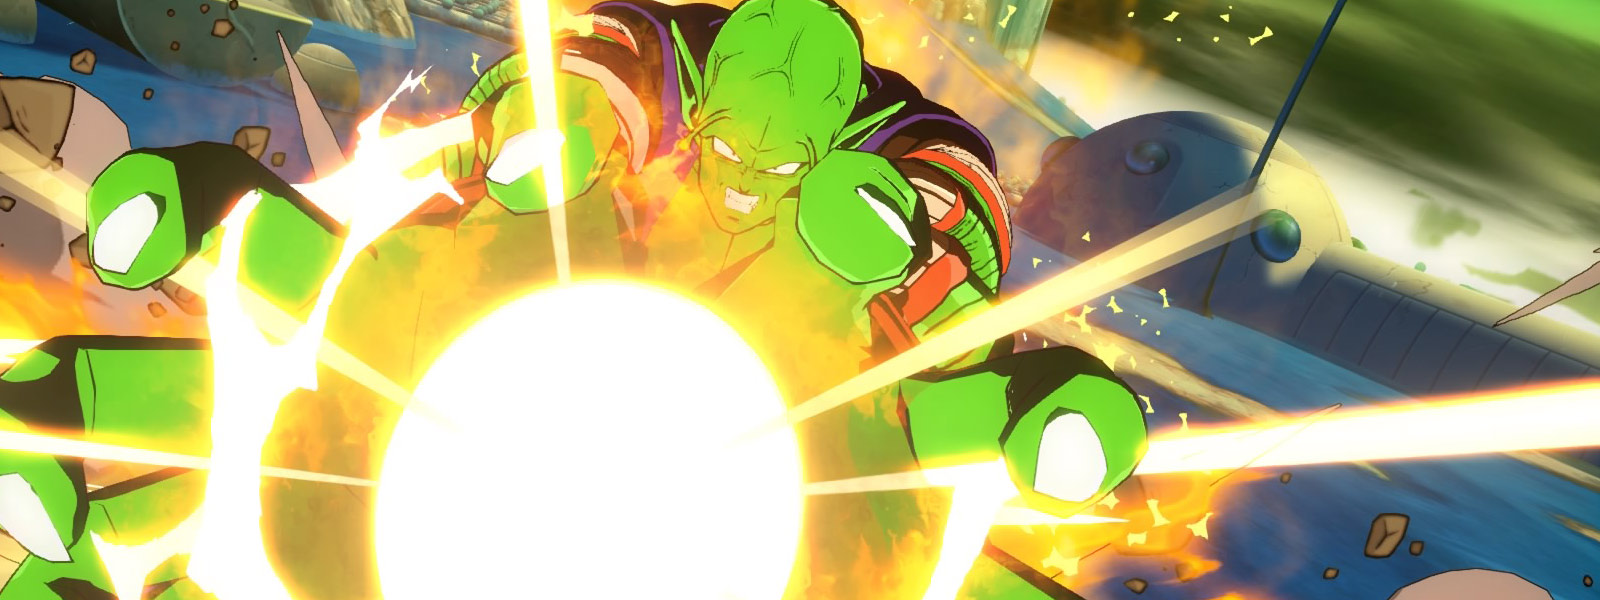 Piccolo launching a fireball with both hands